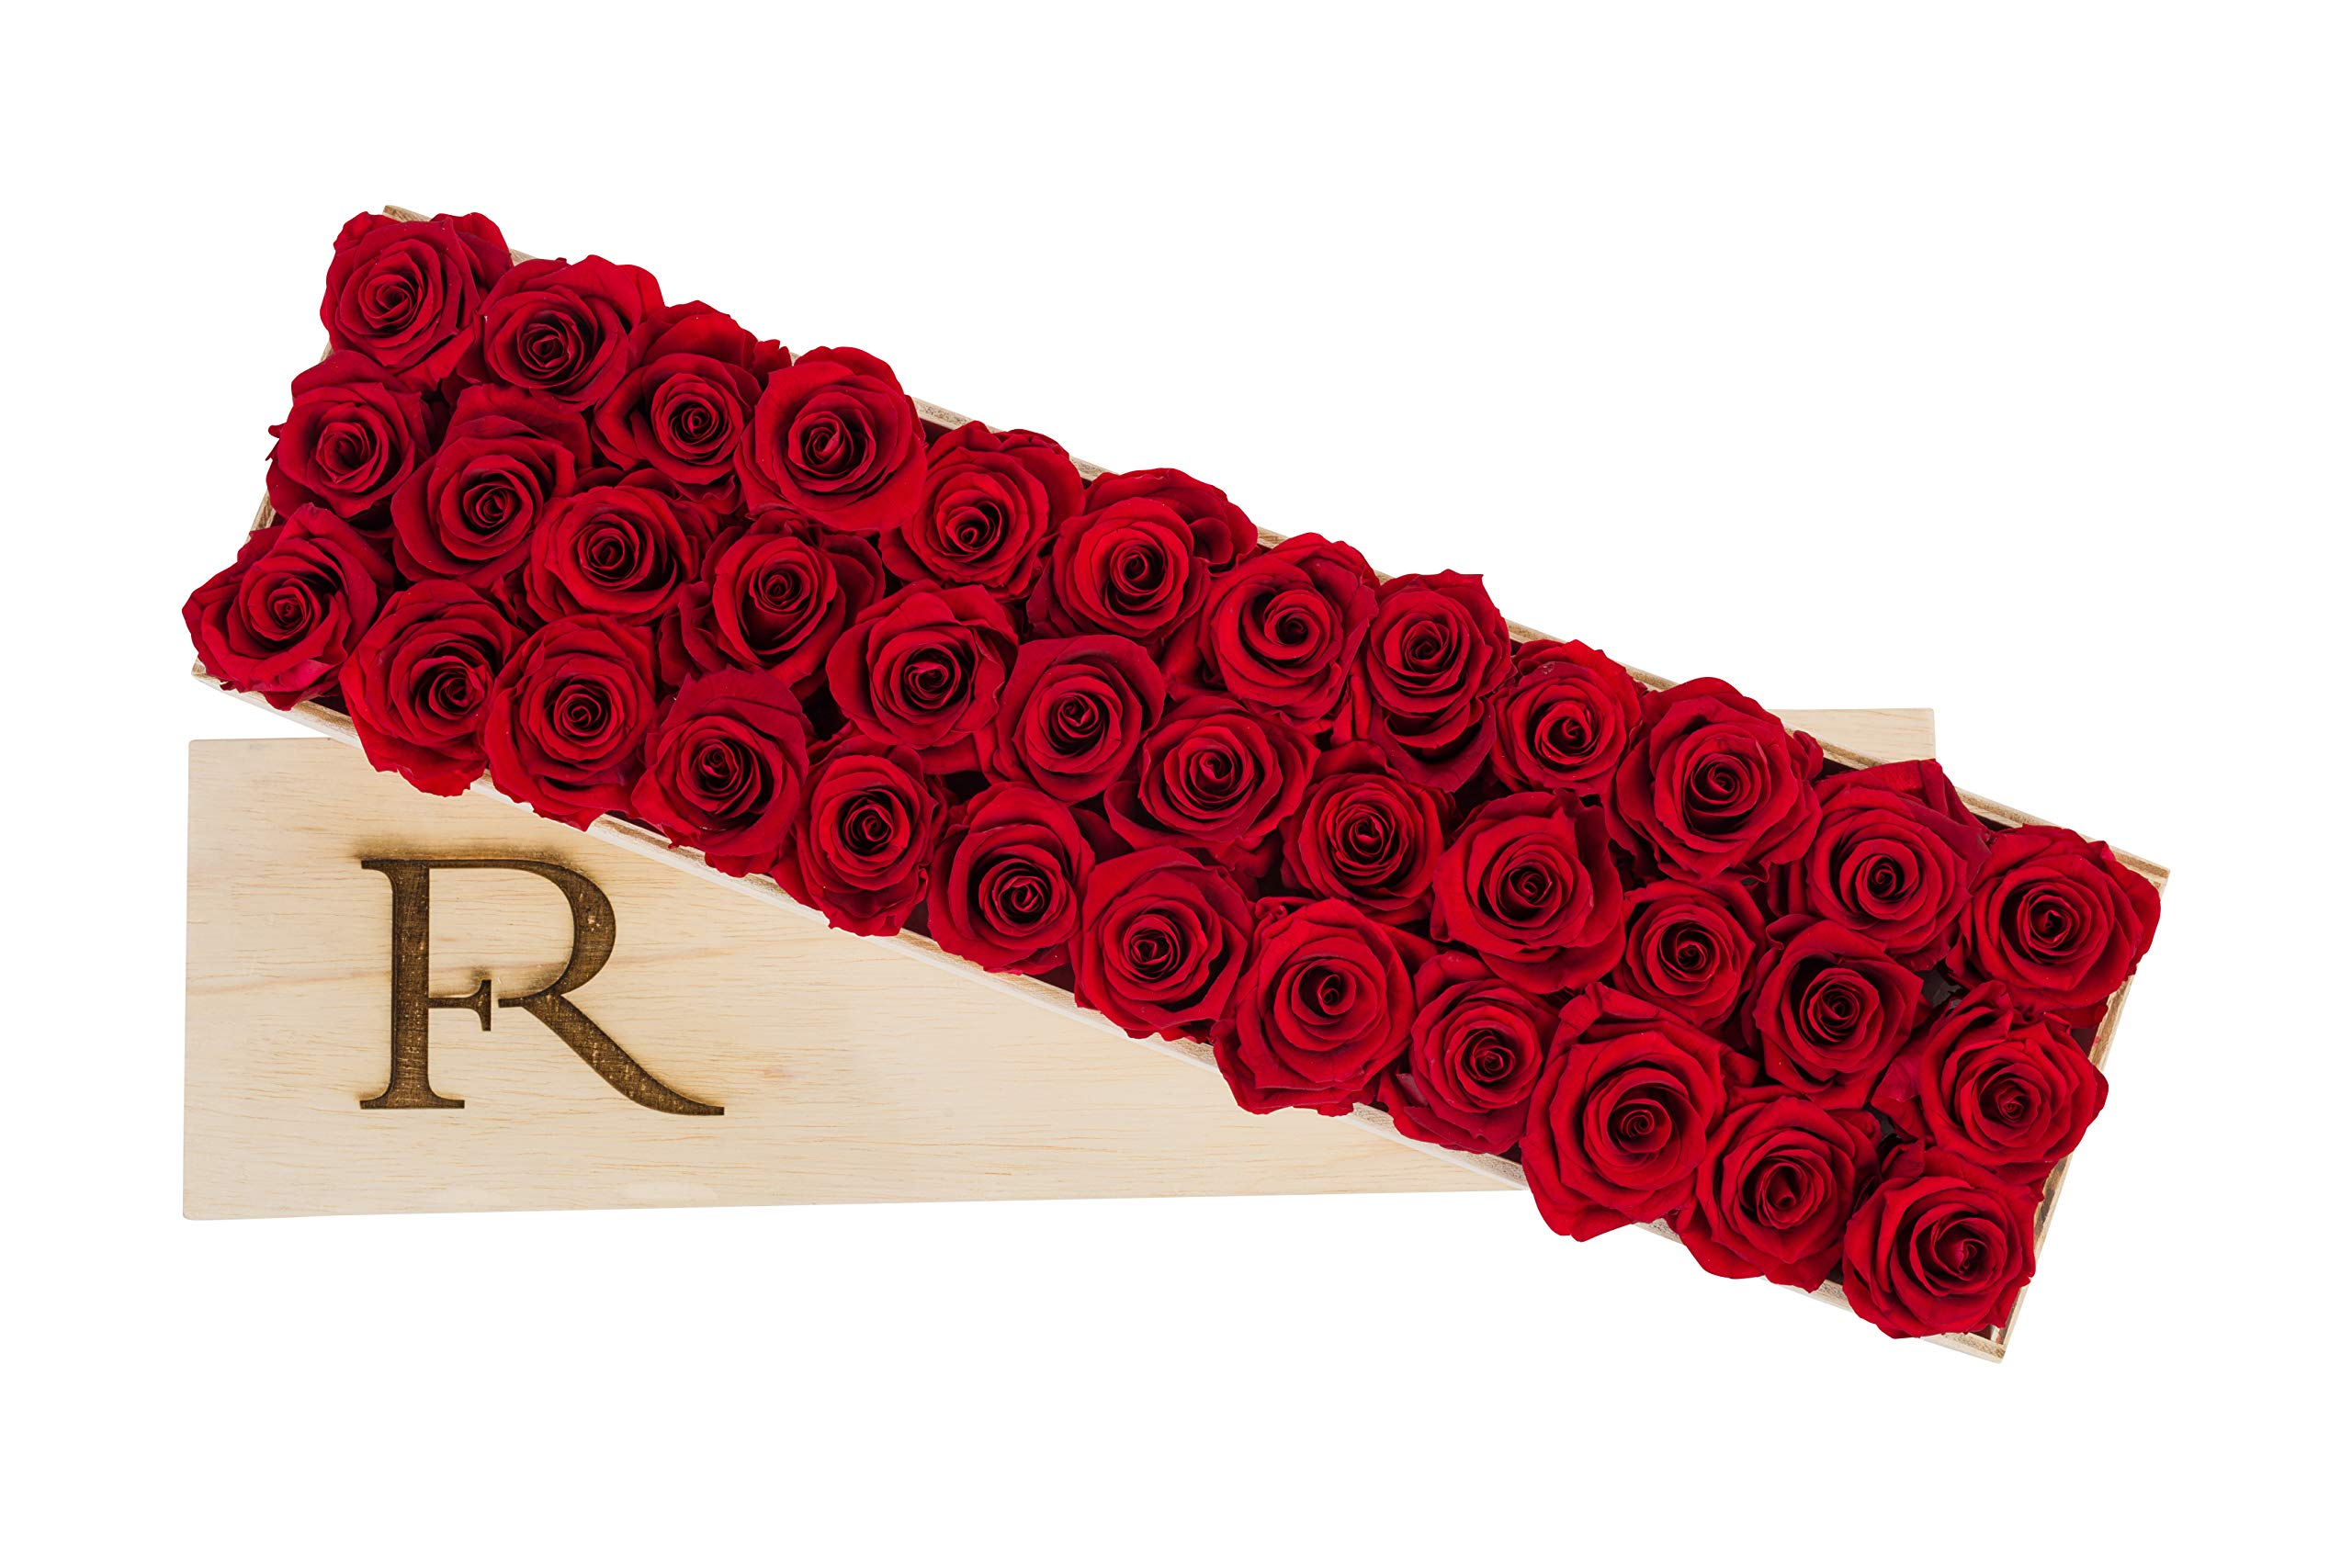 Flower Republic's Preserved Roses | Real Roses That Last a Year | Luxury Gift